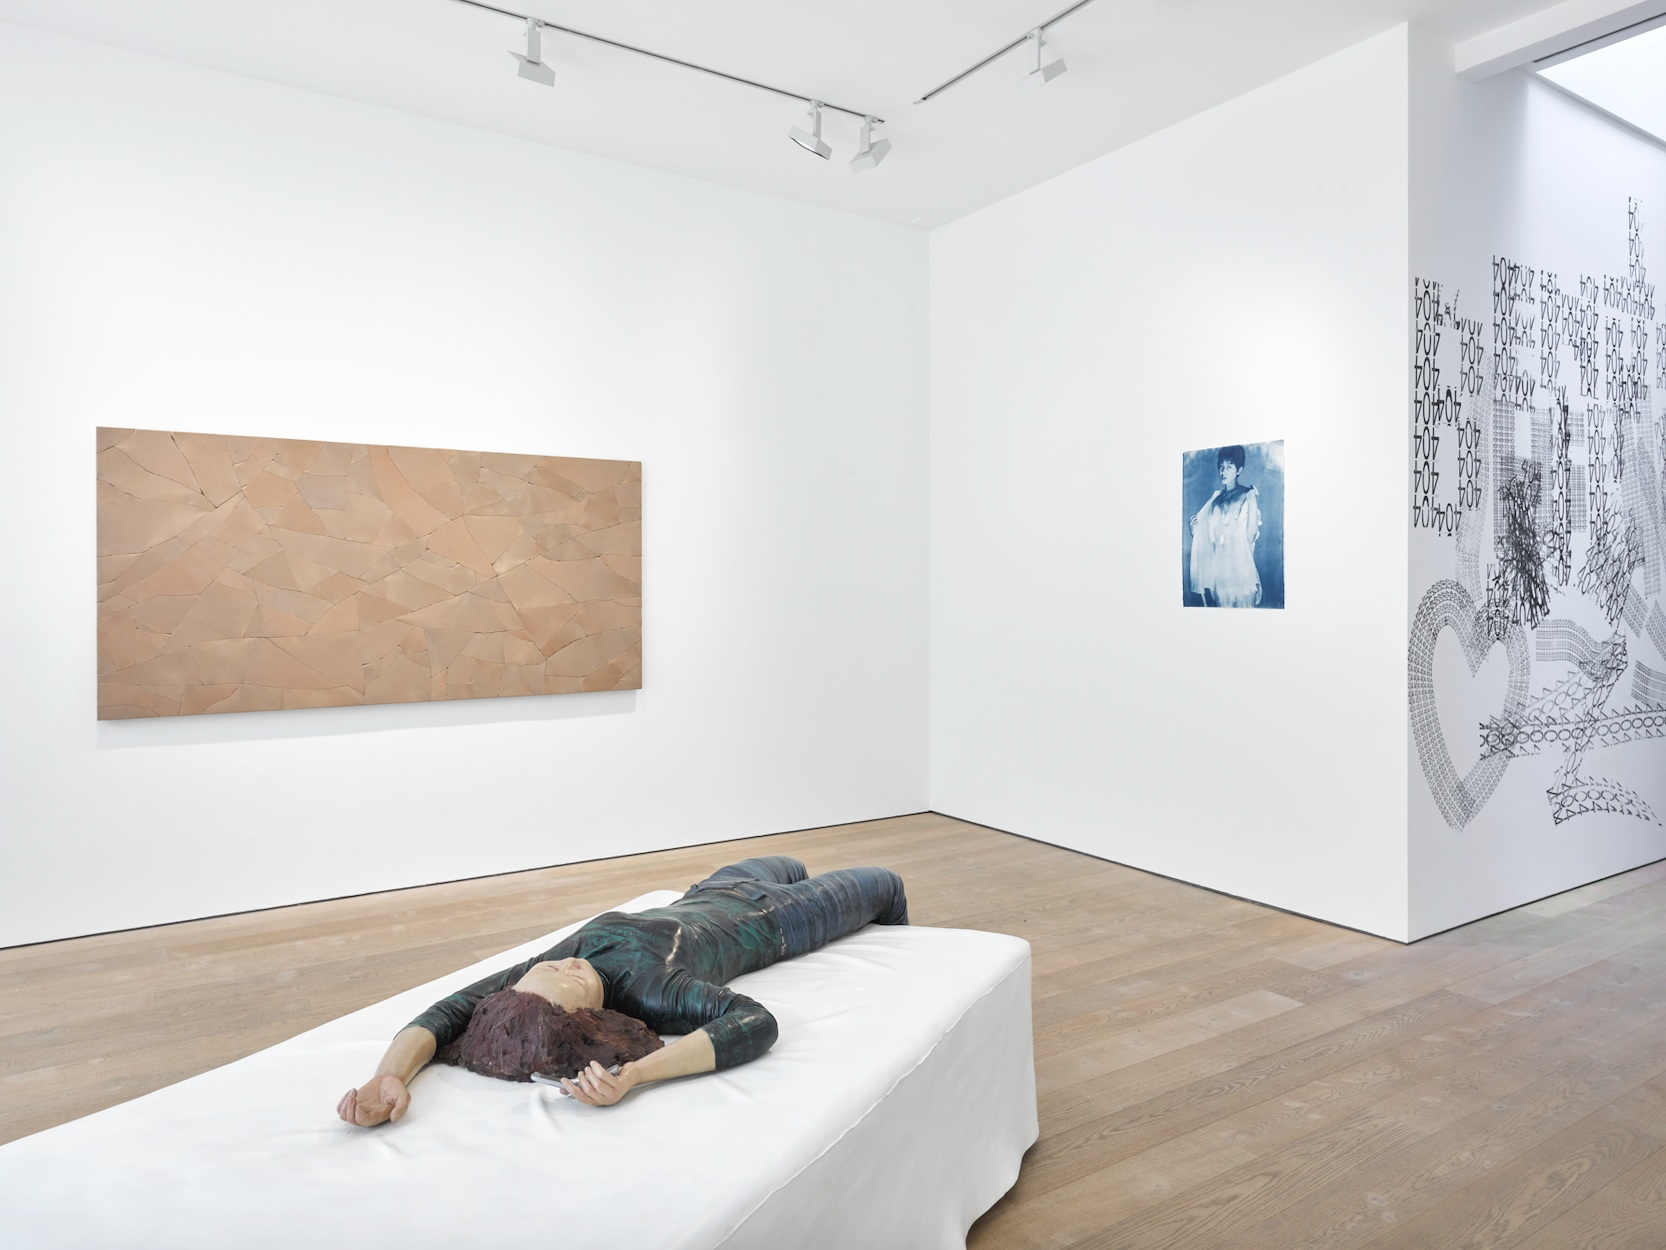 Courtesy of Lisson Gallery, London.